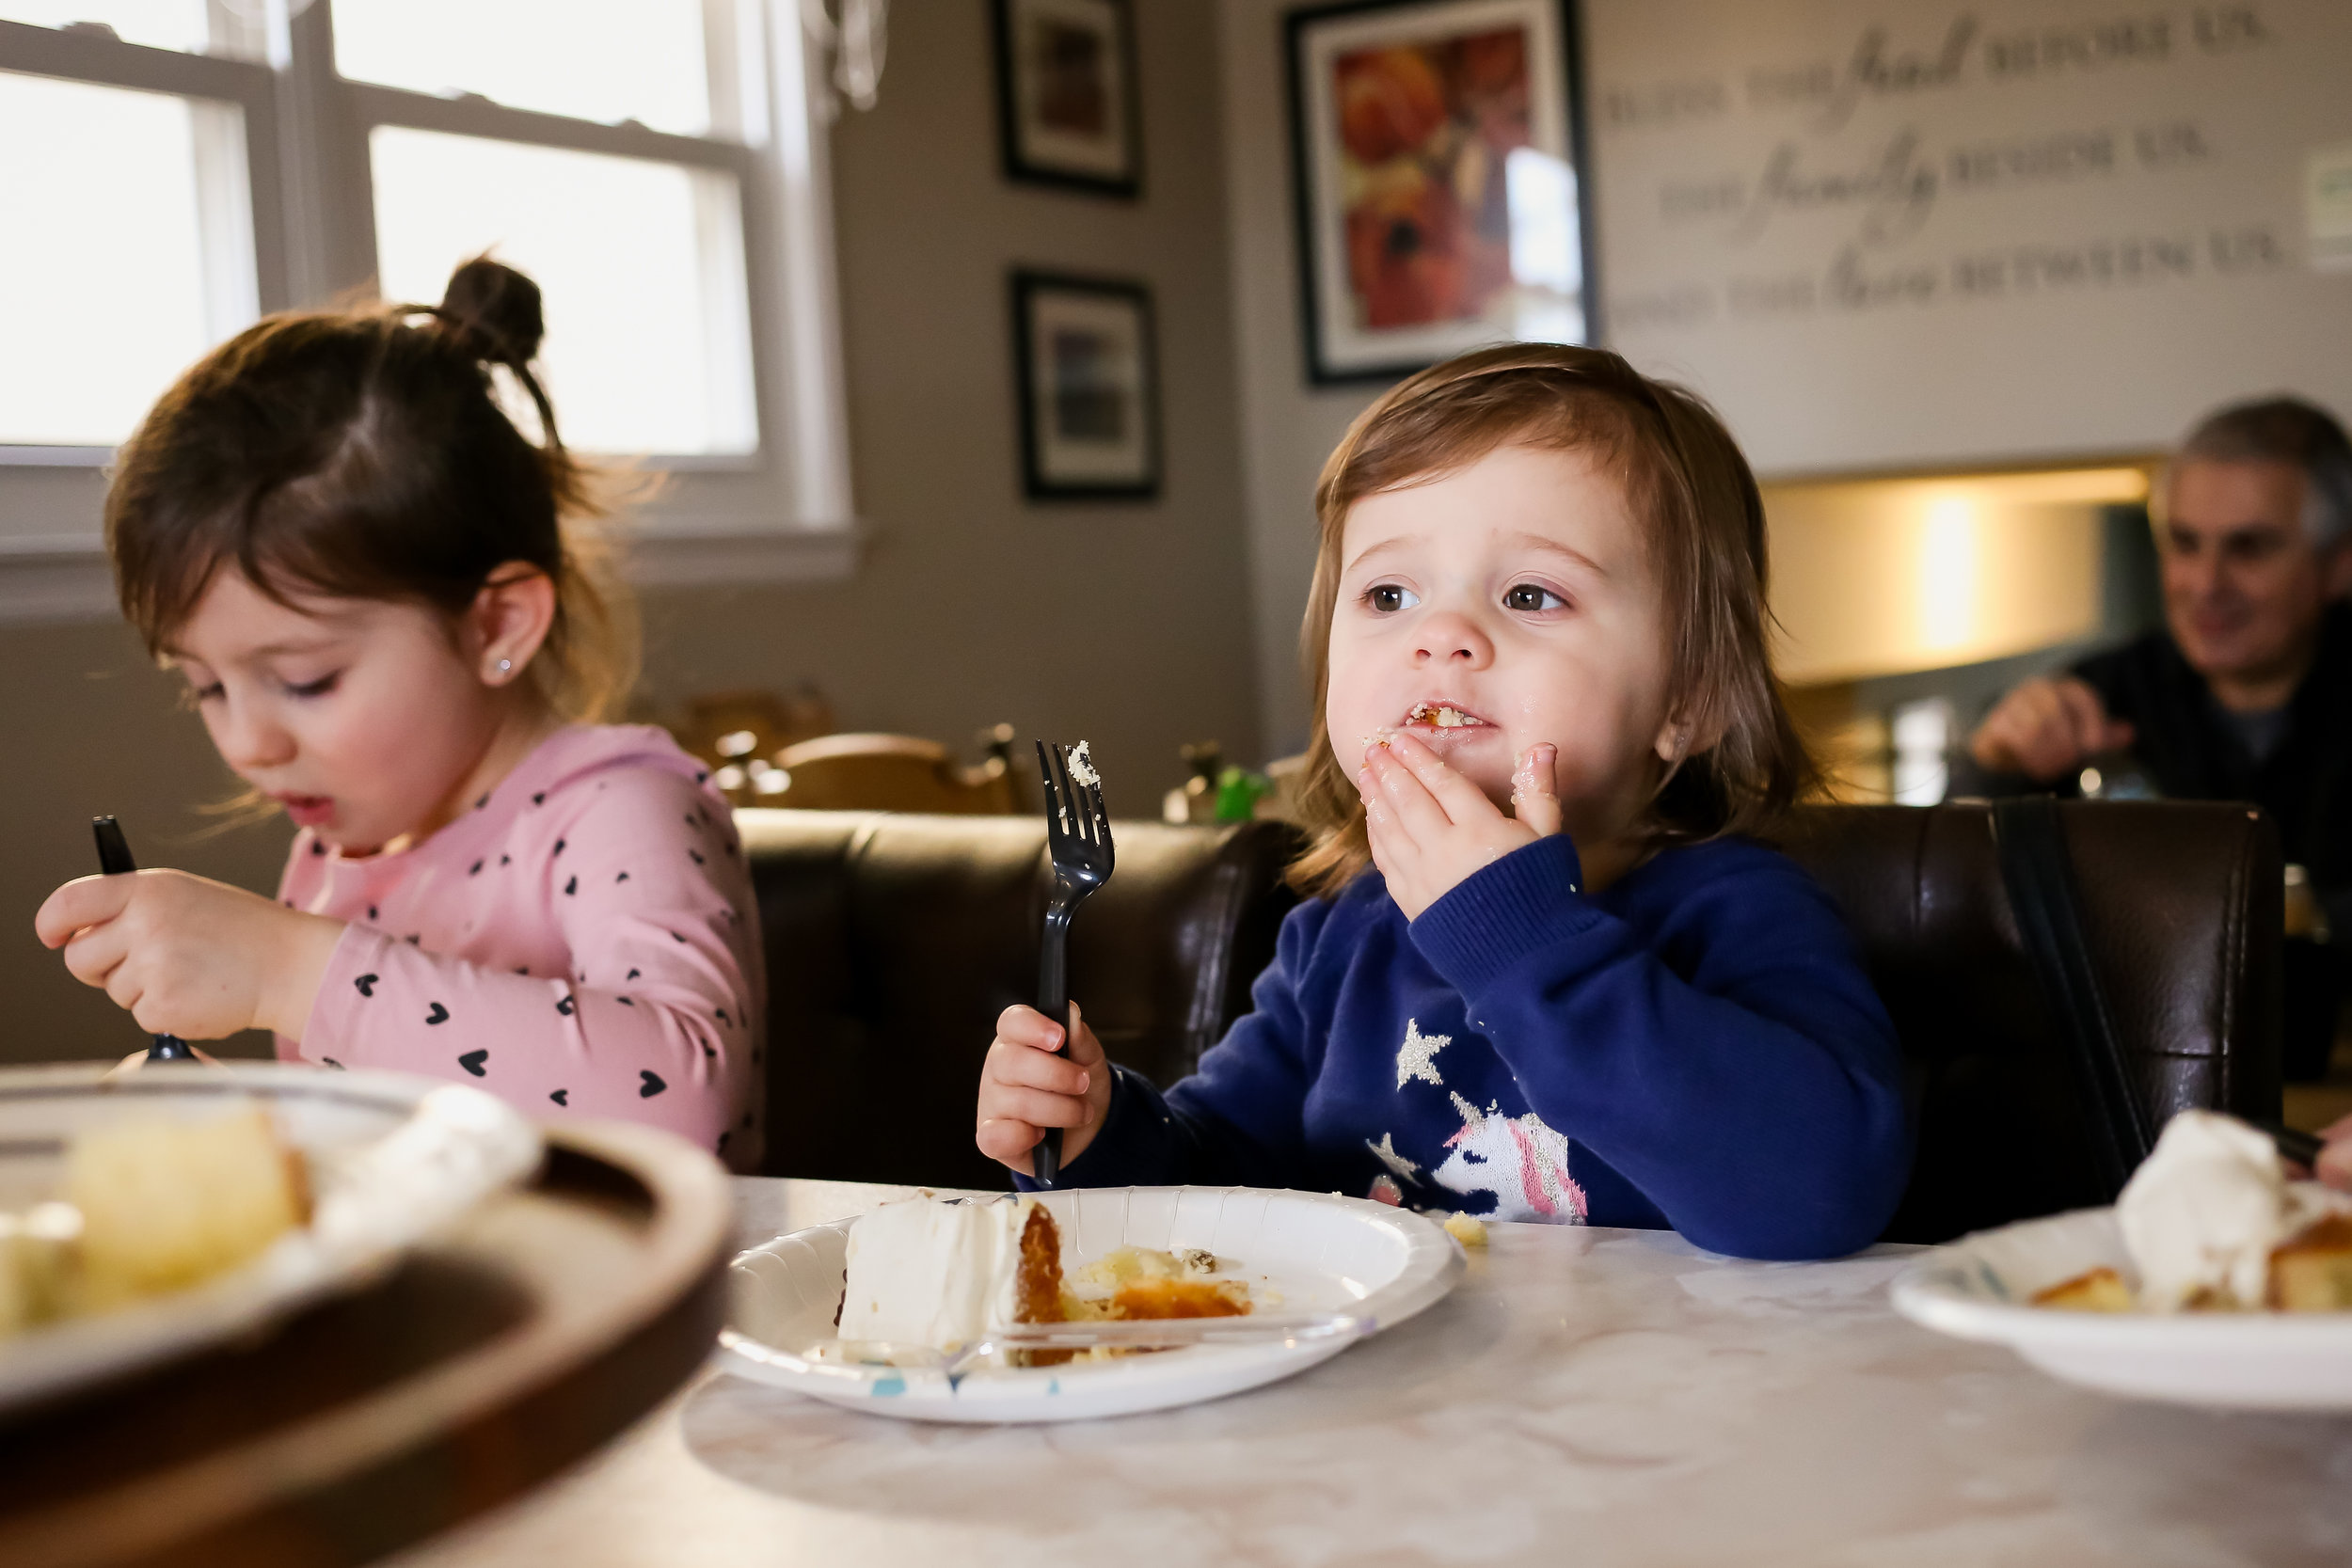 Two year old girl eating her birthday cake. Unposed family photo session by Jen Grima Photography, Lehigh Valley.